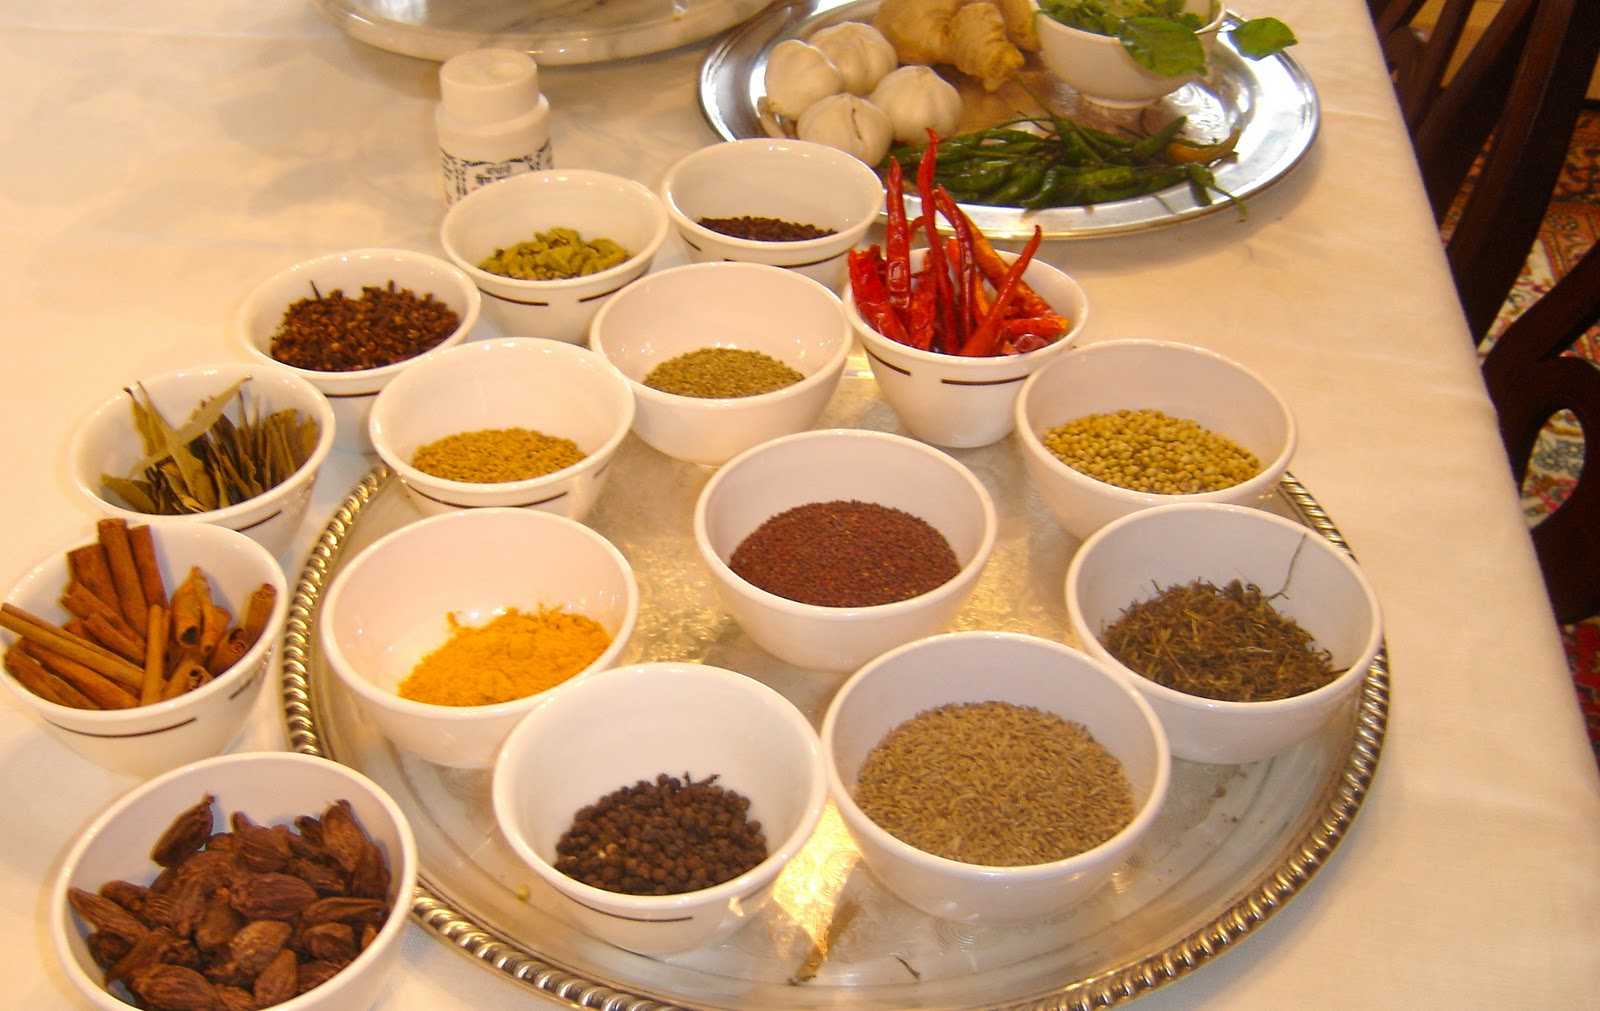 Taste of Nepal: Commonly Used Herbs and Spices in Nepali Cooking